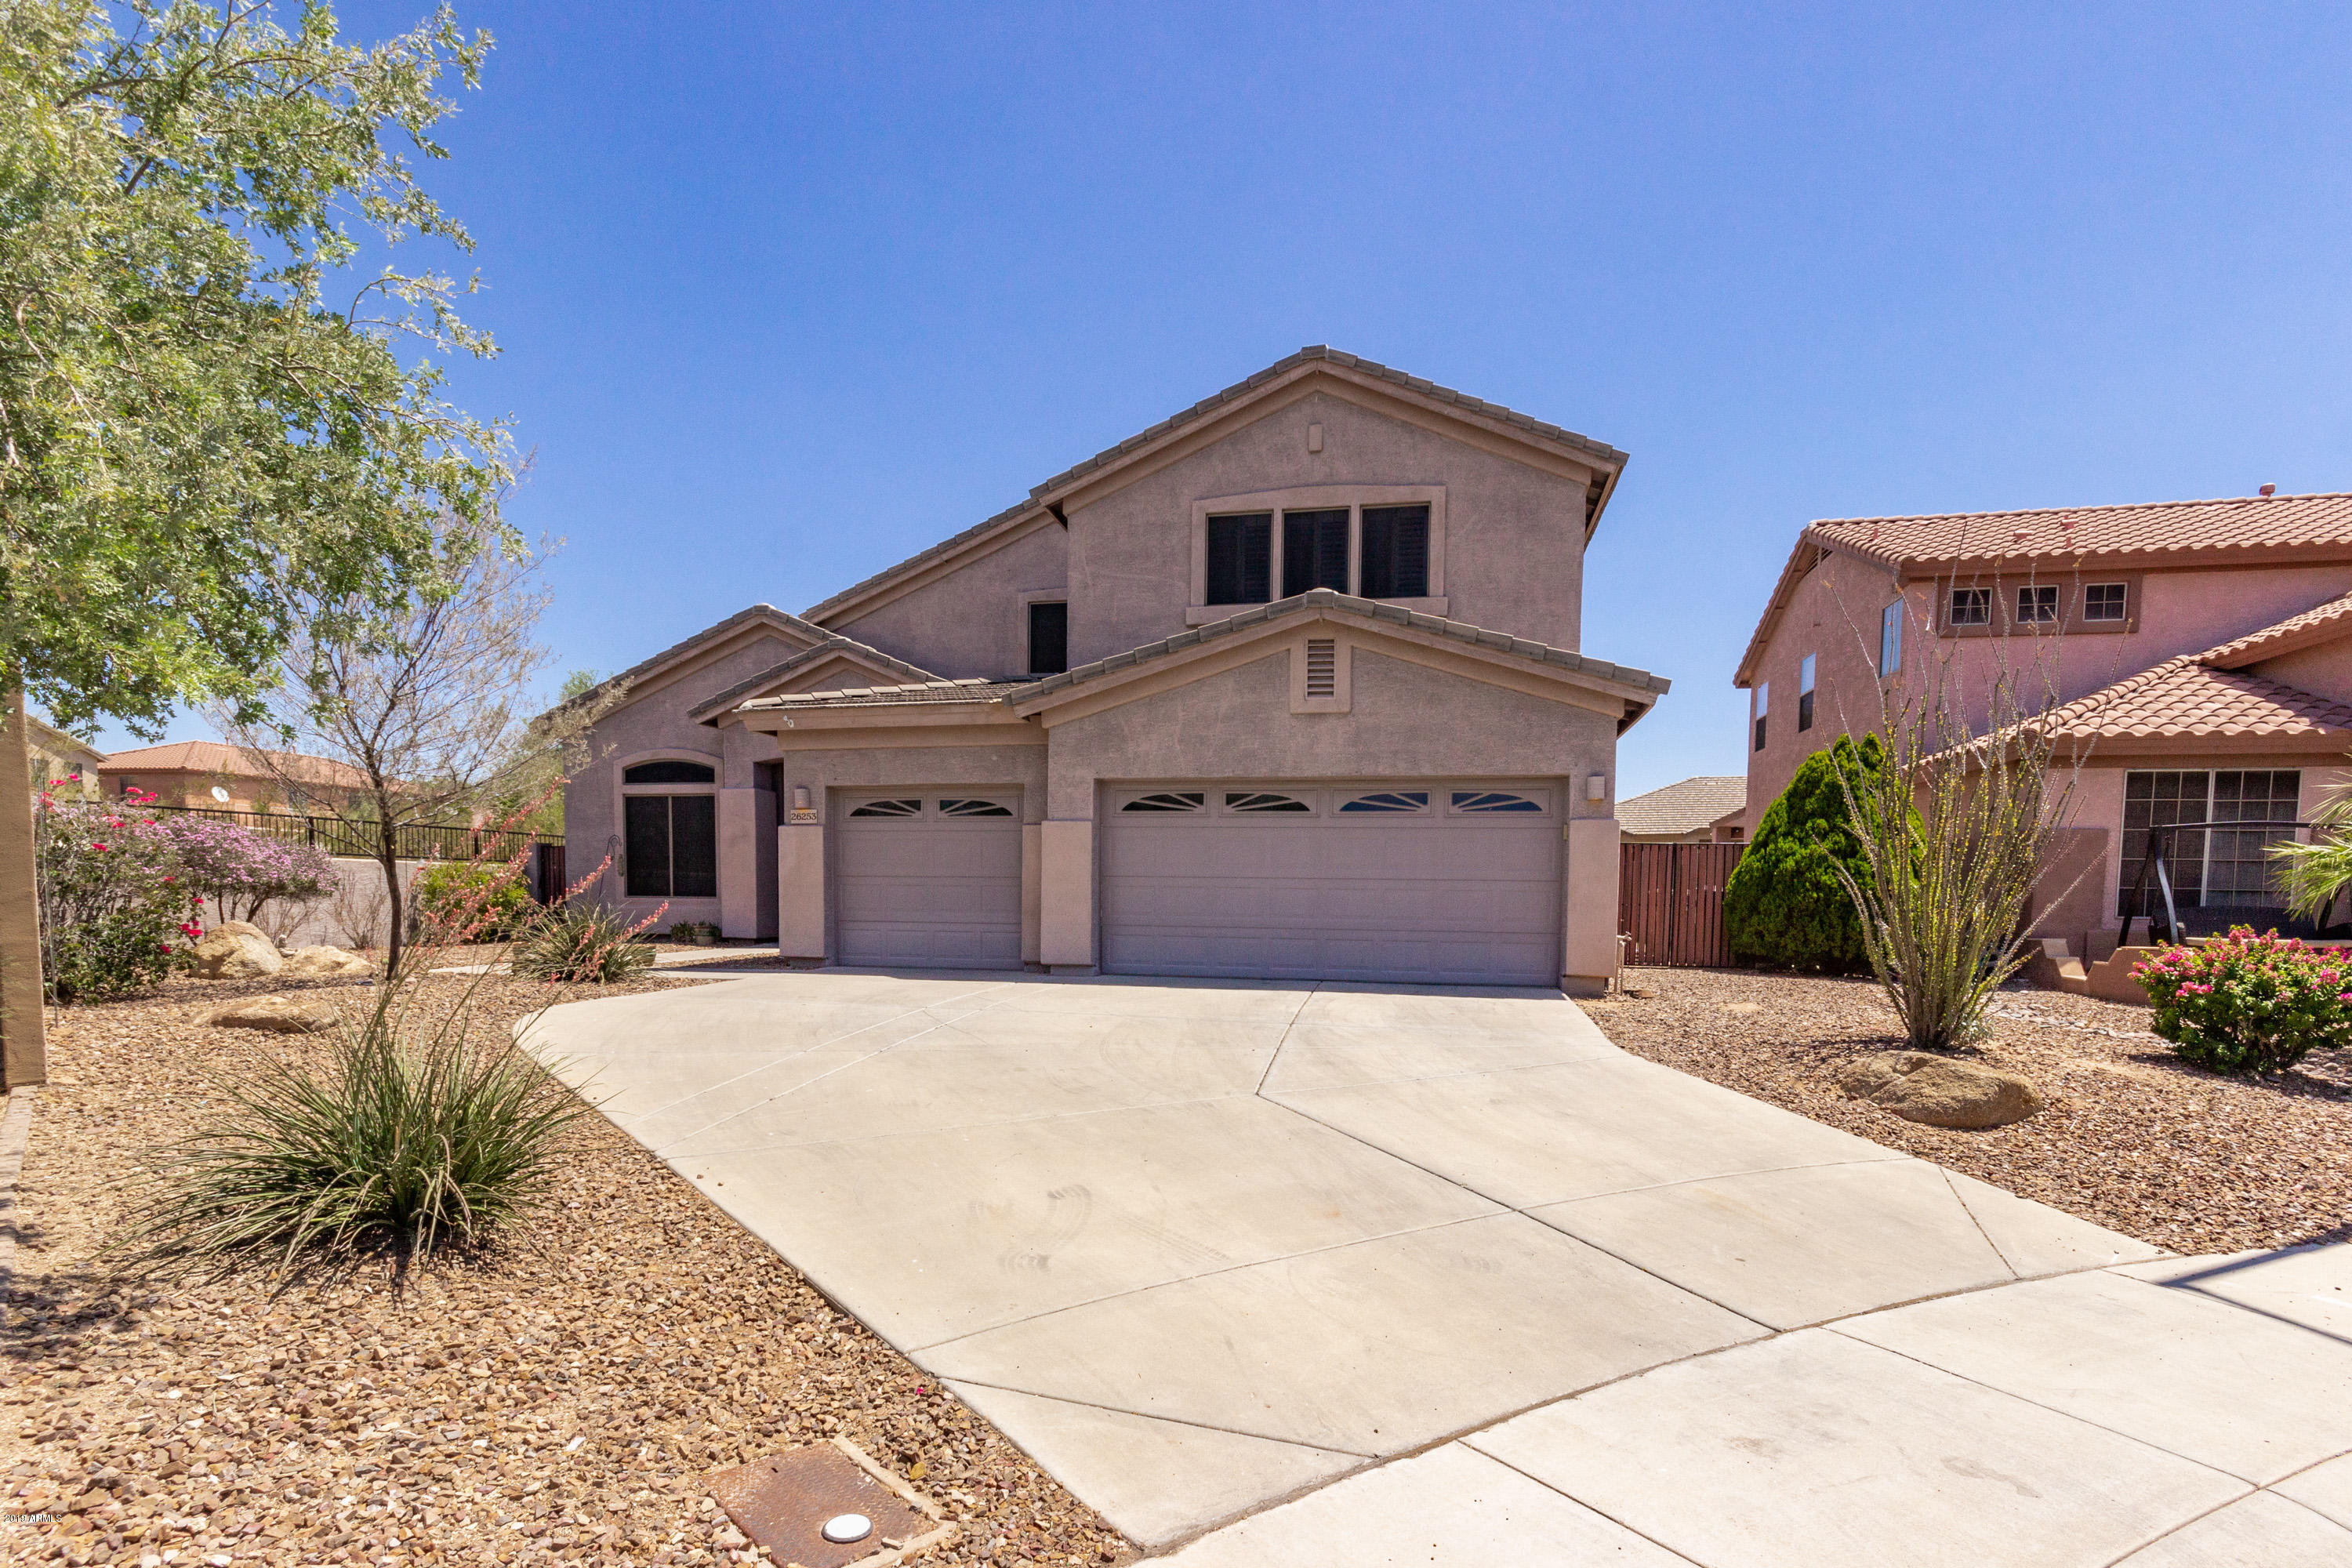 26253 N 72ND Drive, Peoria in Maricopa County, AZ 85383 Home for Sale